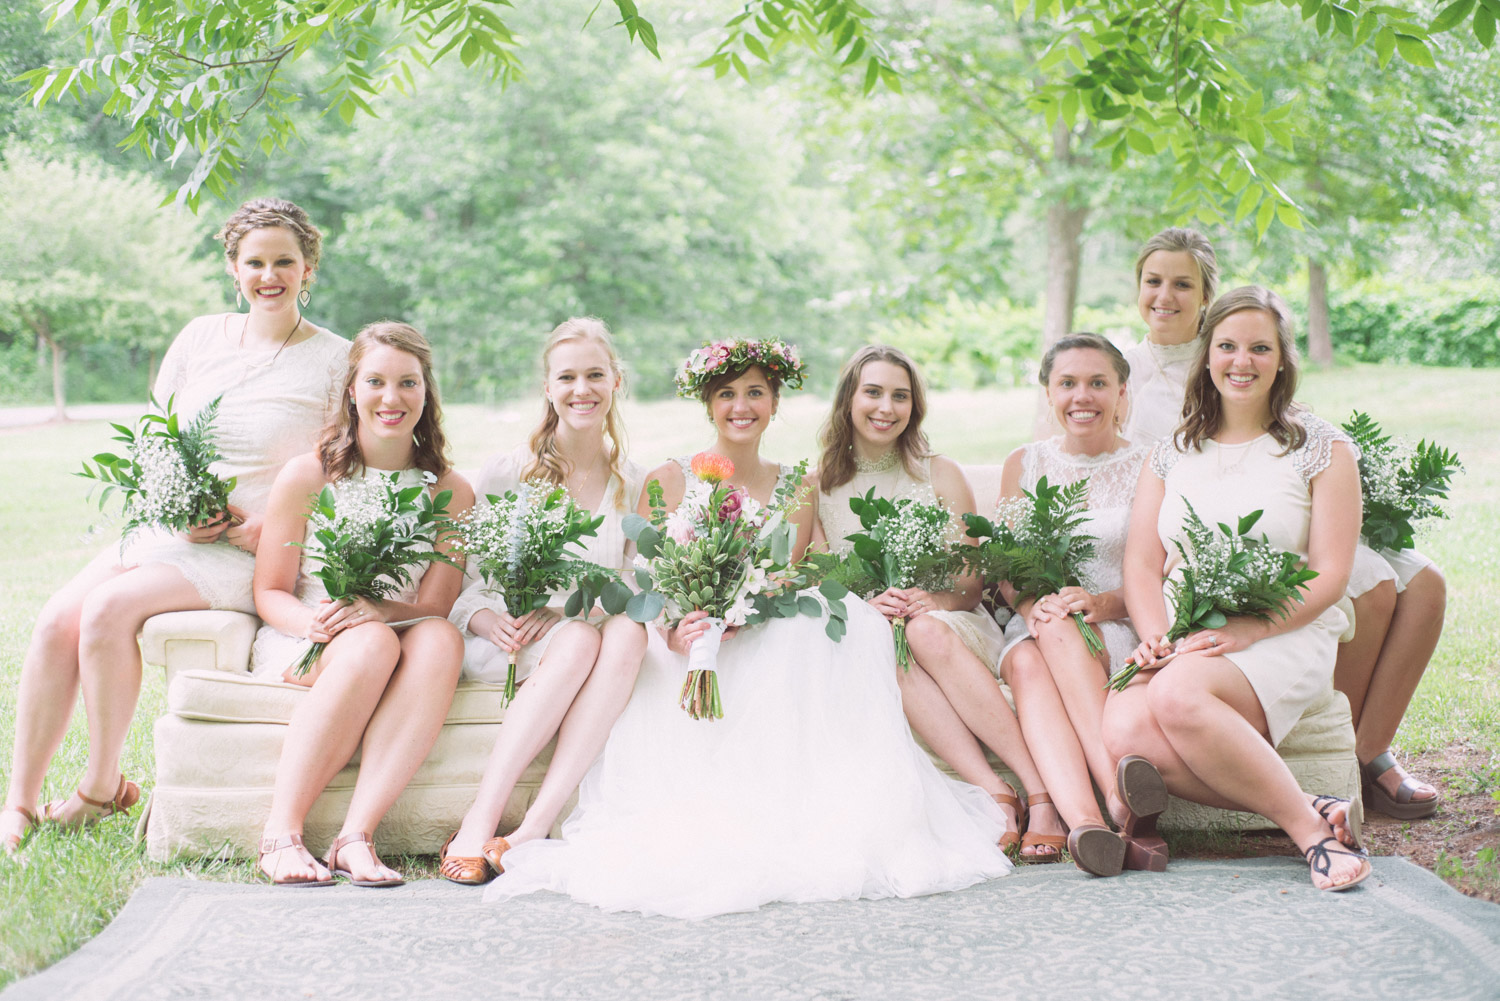 Atlanta-Wedding-Photographer-LeahAndMark-036